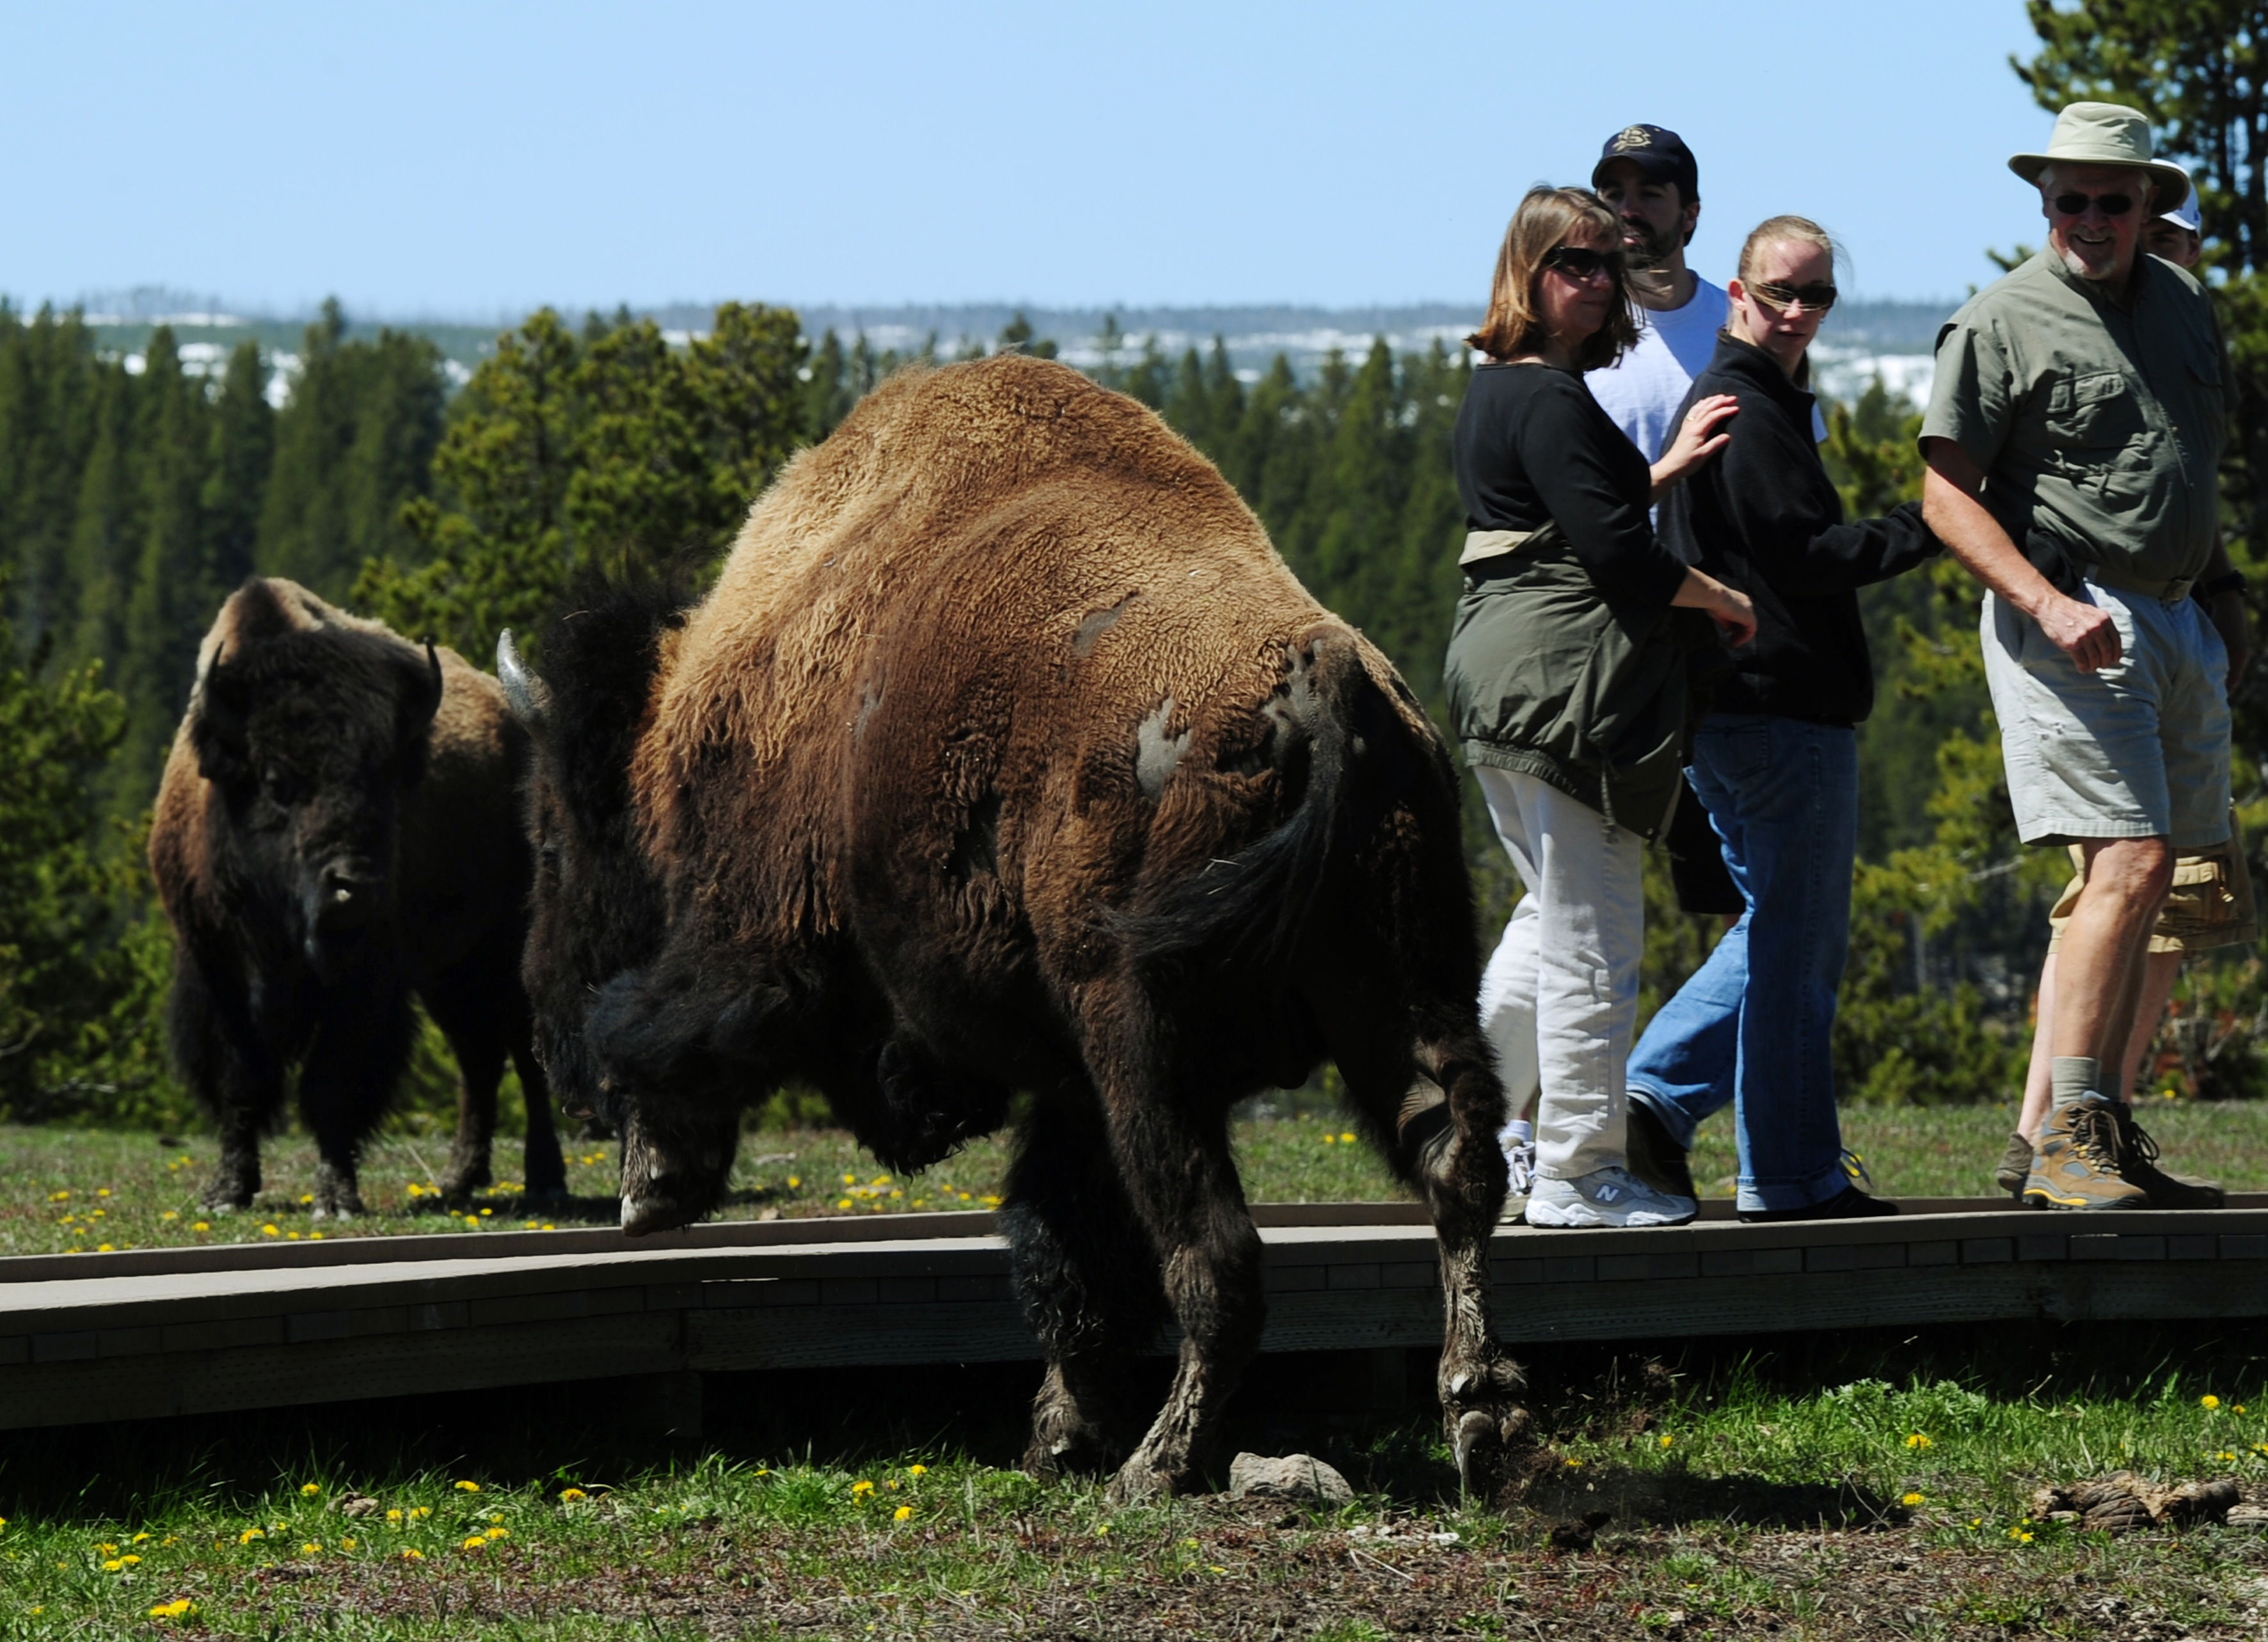 Bison Attacks Woman In Yellowstone Park